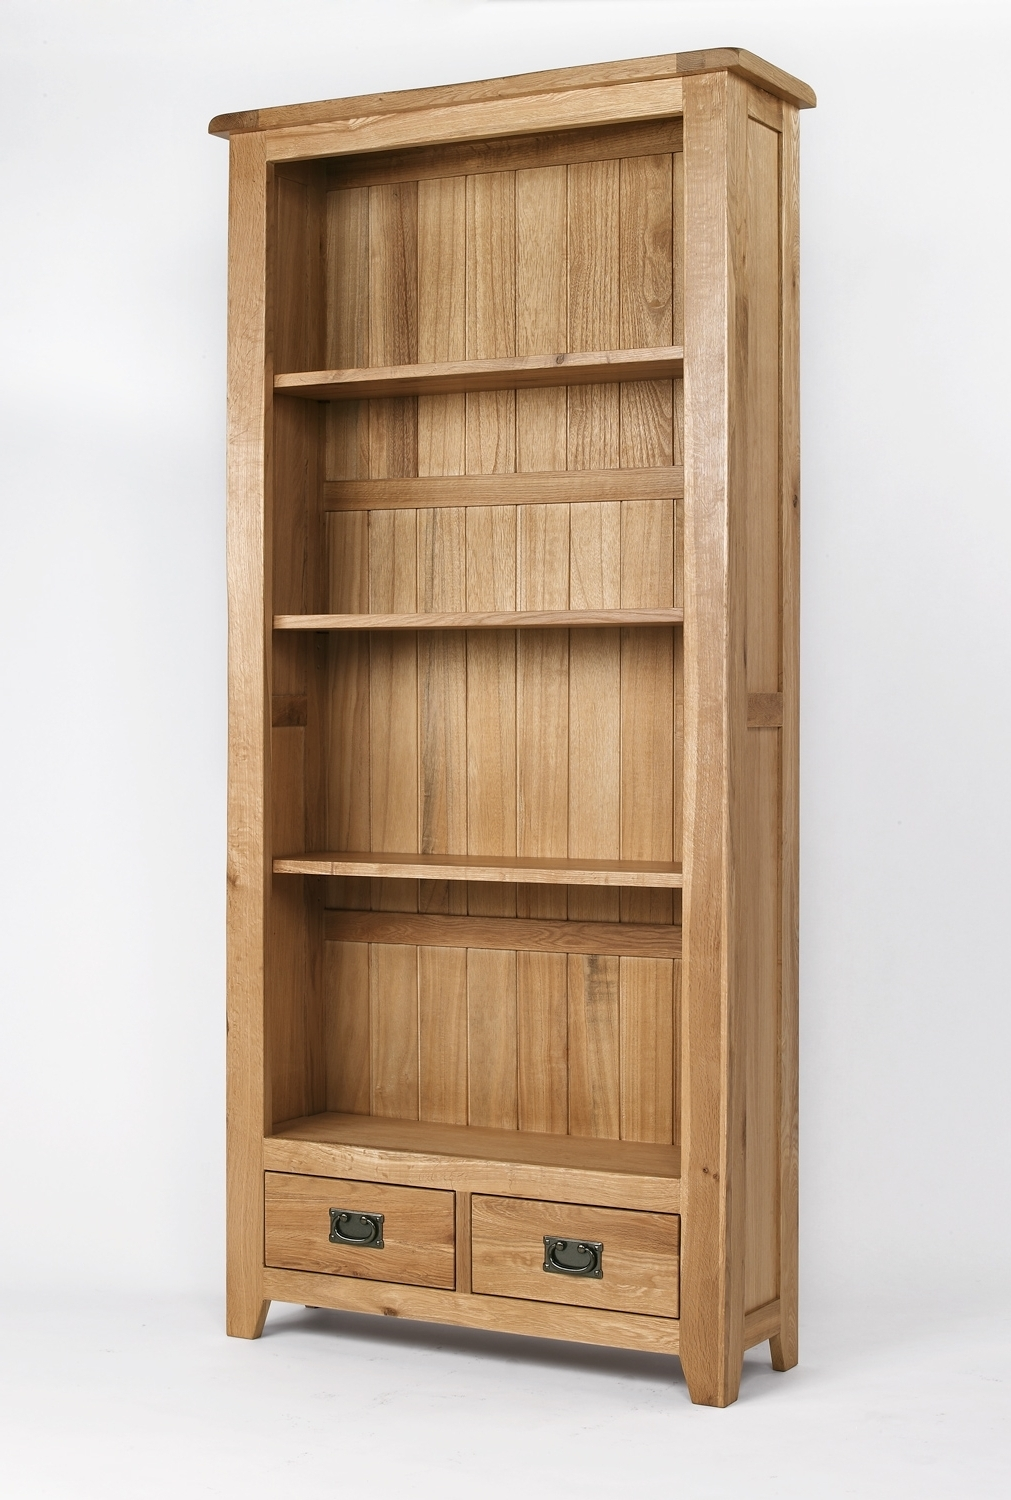 Wood Bookcases For Newest Bookcases Ideas: Amish Bookcases Furniture In Solid Wood Oak (View 5 of 15)